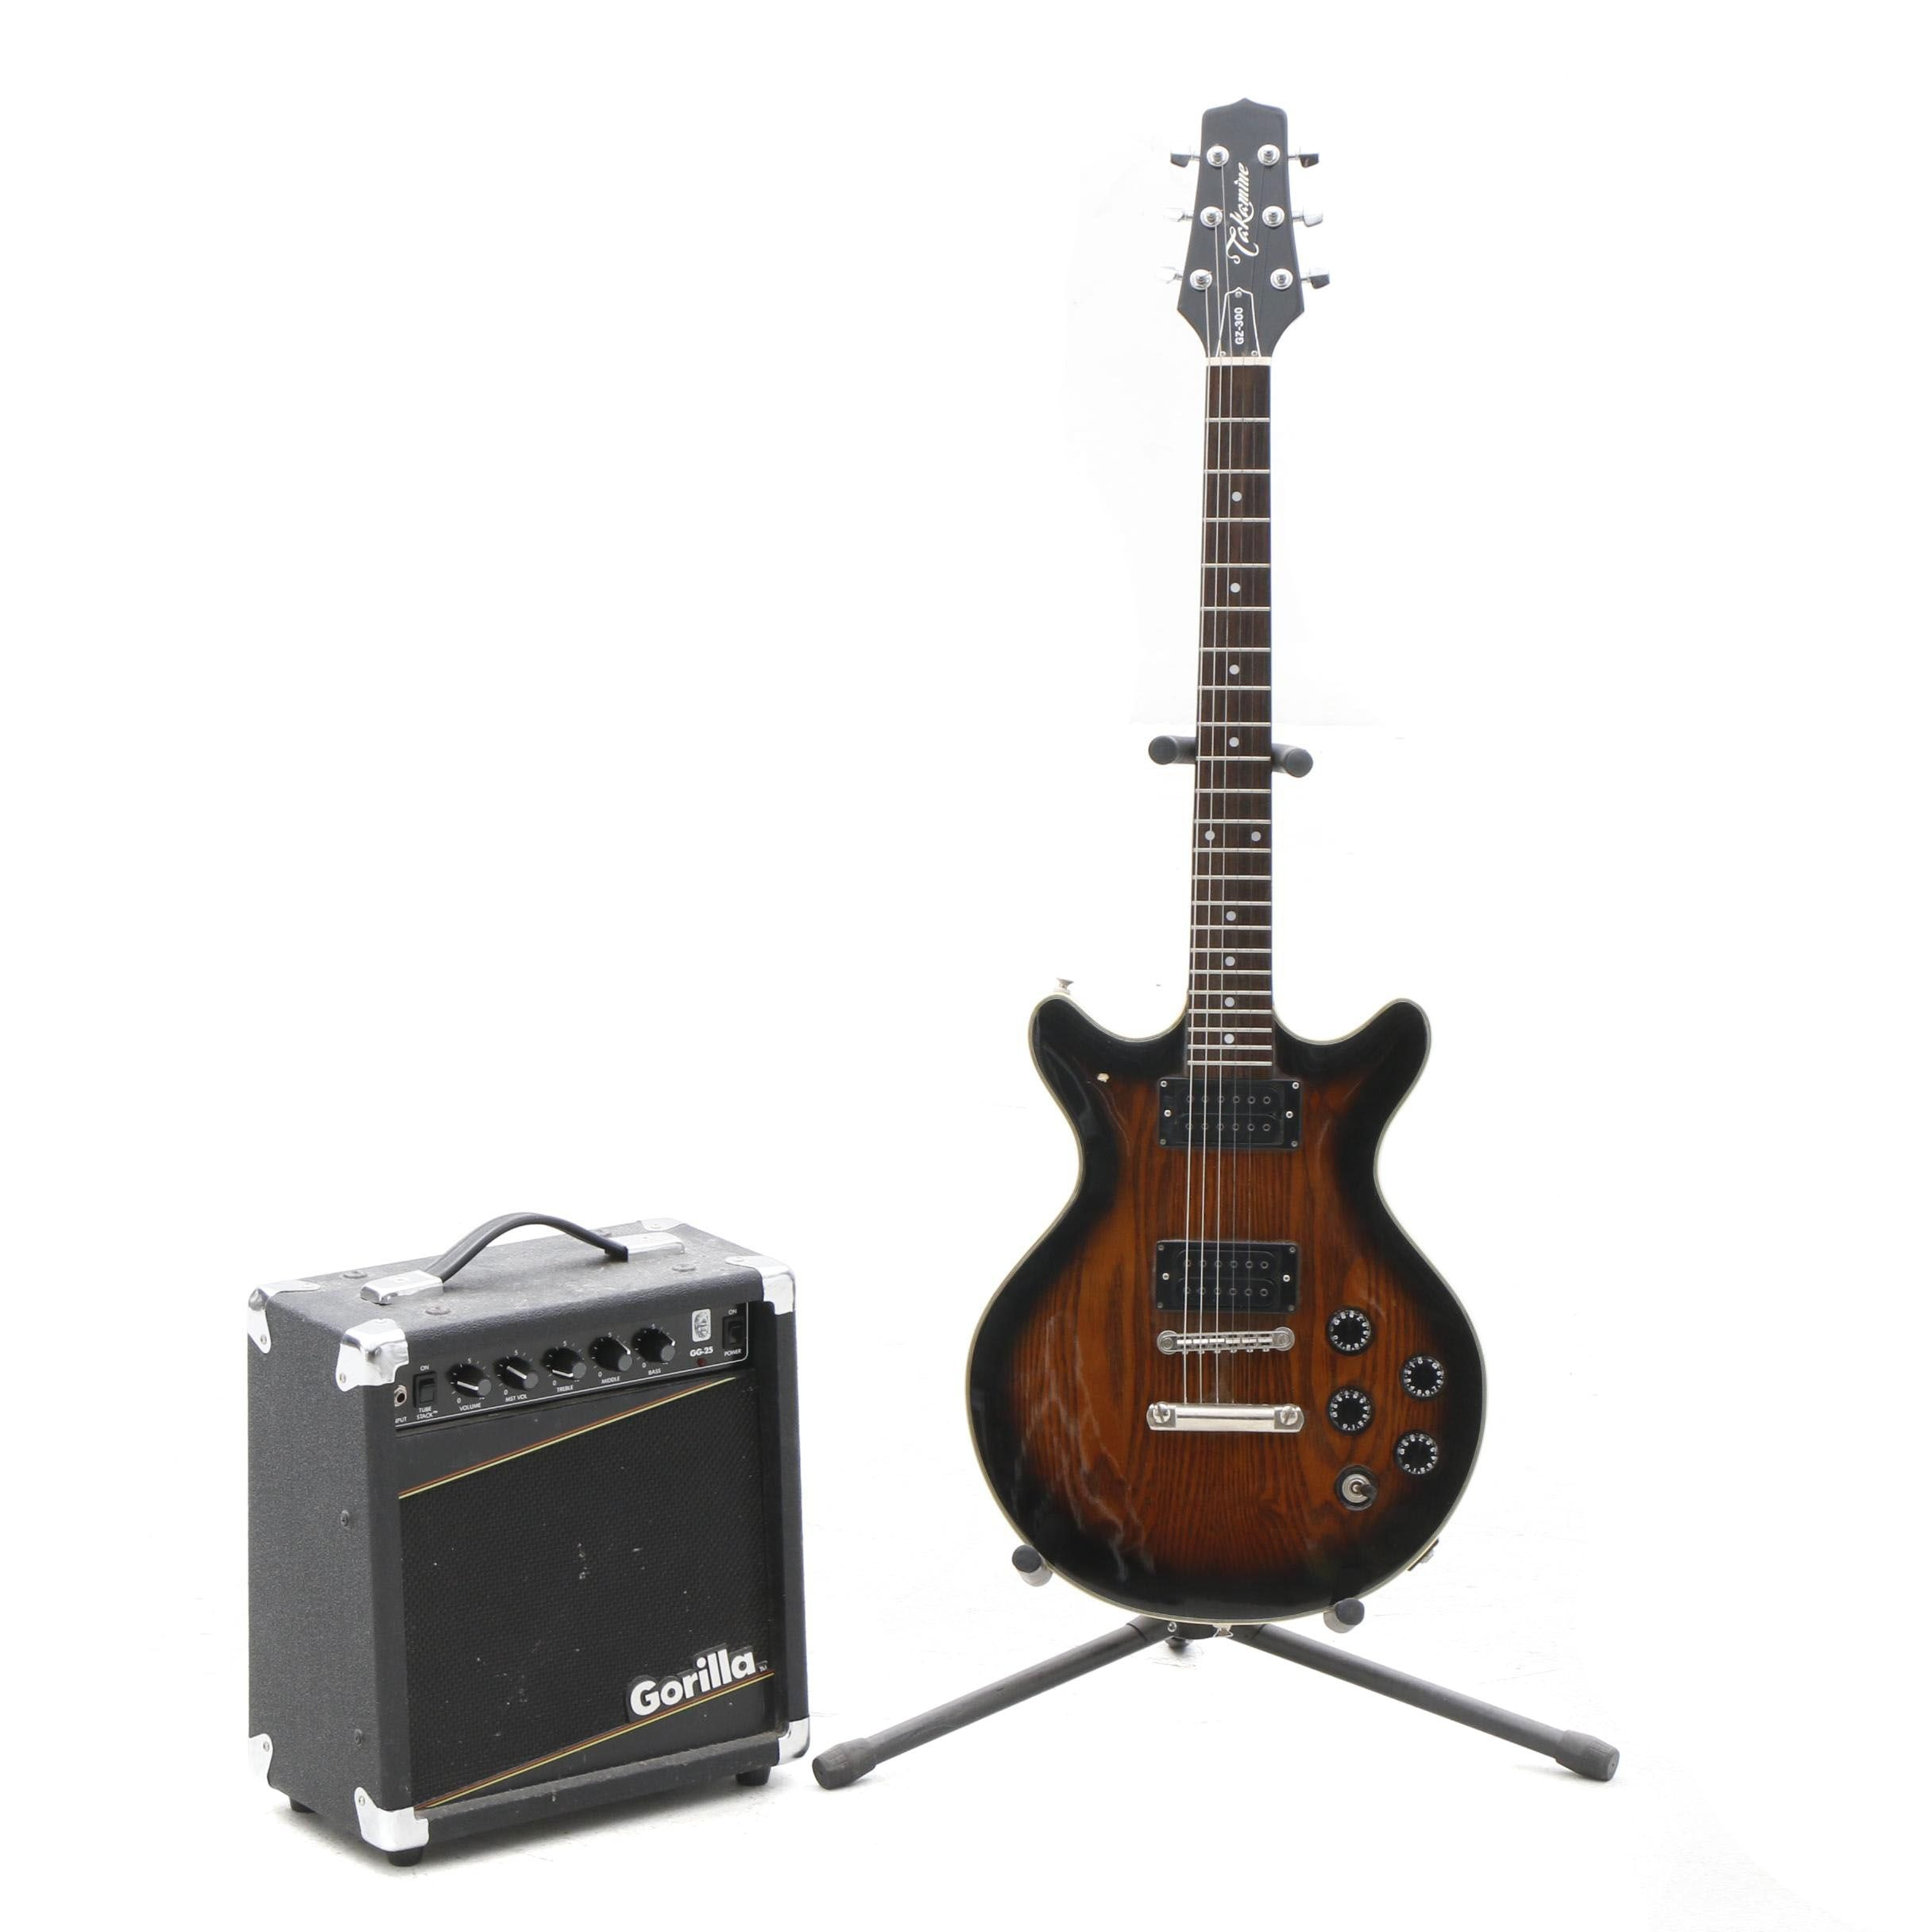 Takamine GZ-300 Electric Guitar With Gorilla GG-25 Amplifier and Carrying Cases